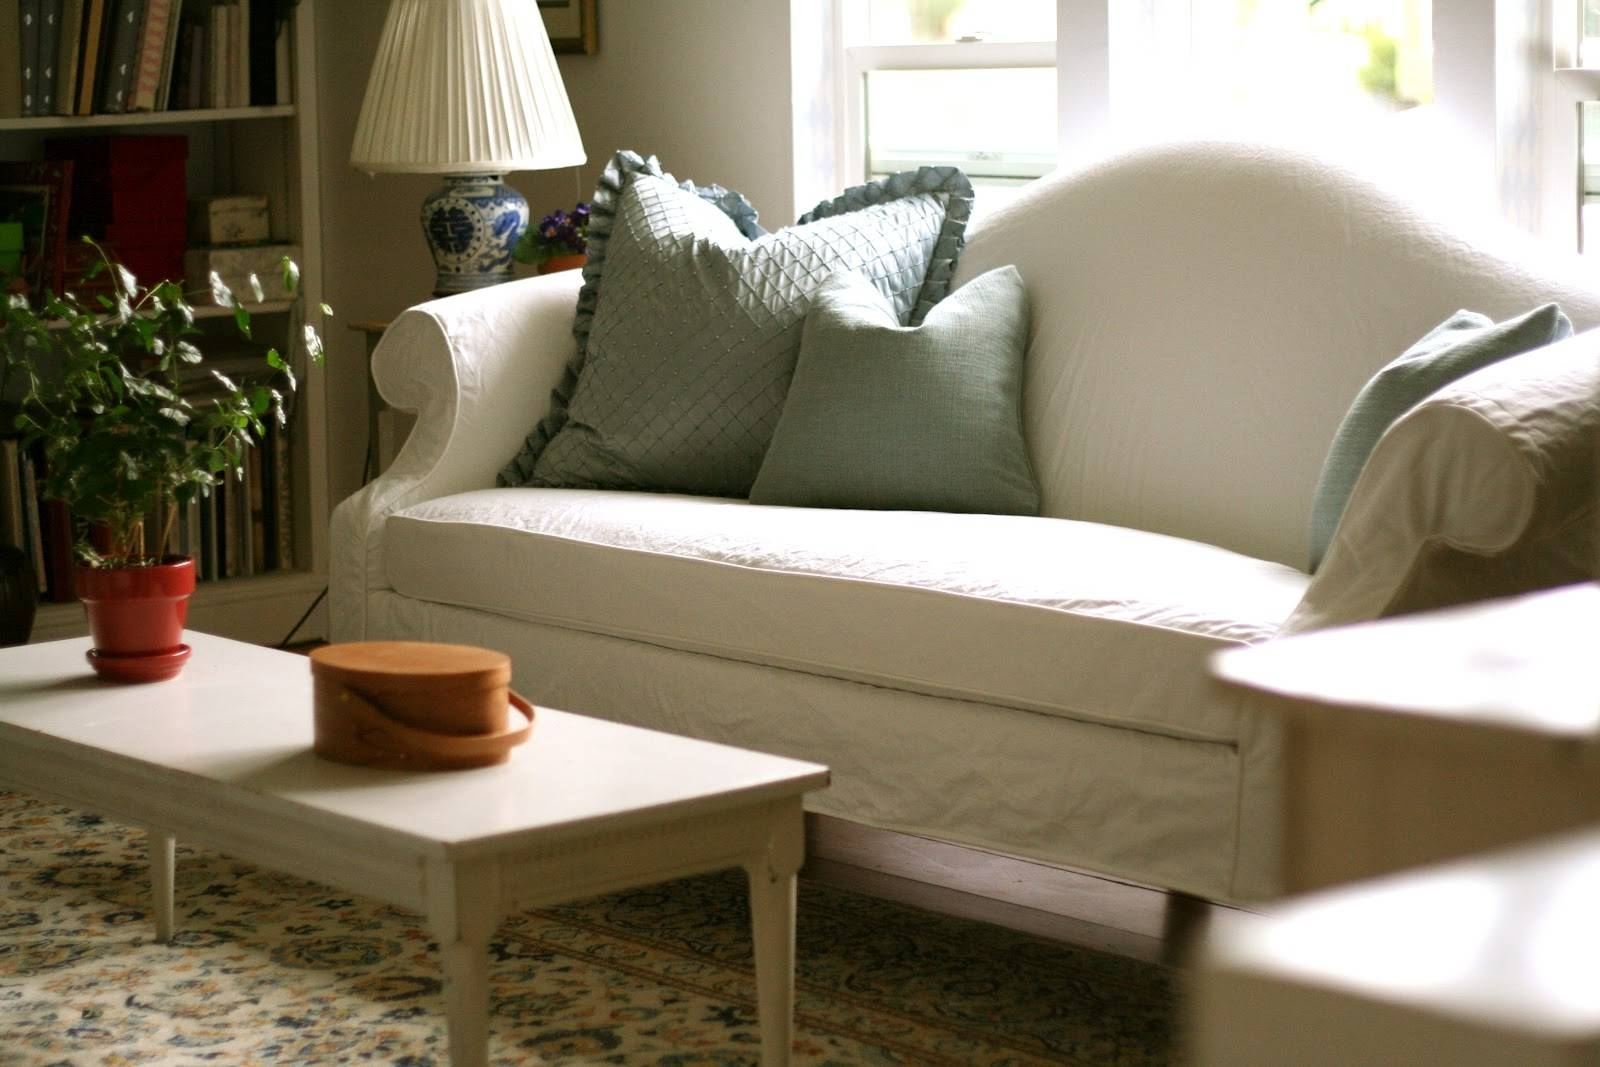 Custom Slipcoversshelley: White Camel Back Couch with regard to Camel Back Sofa Slipcovers (Image 10 of 15)